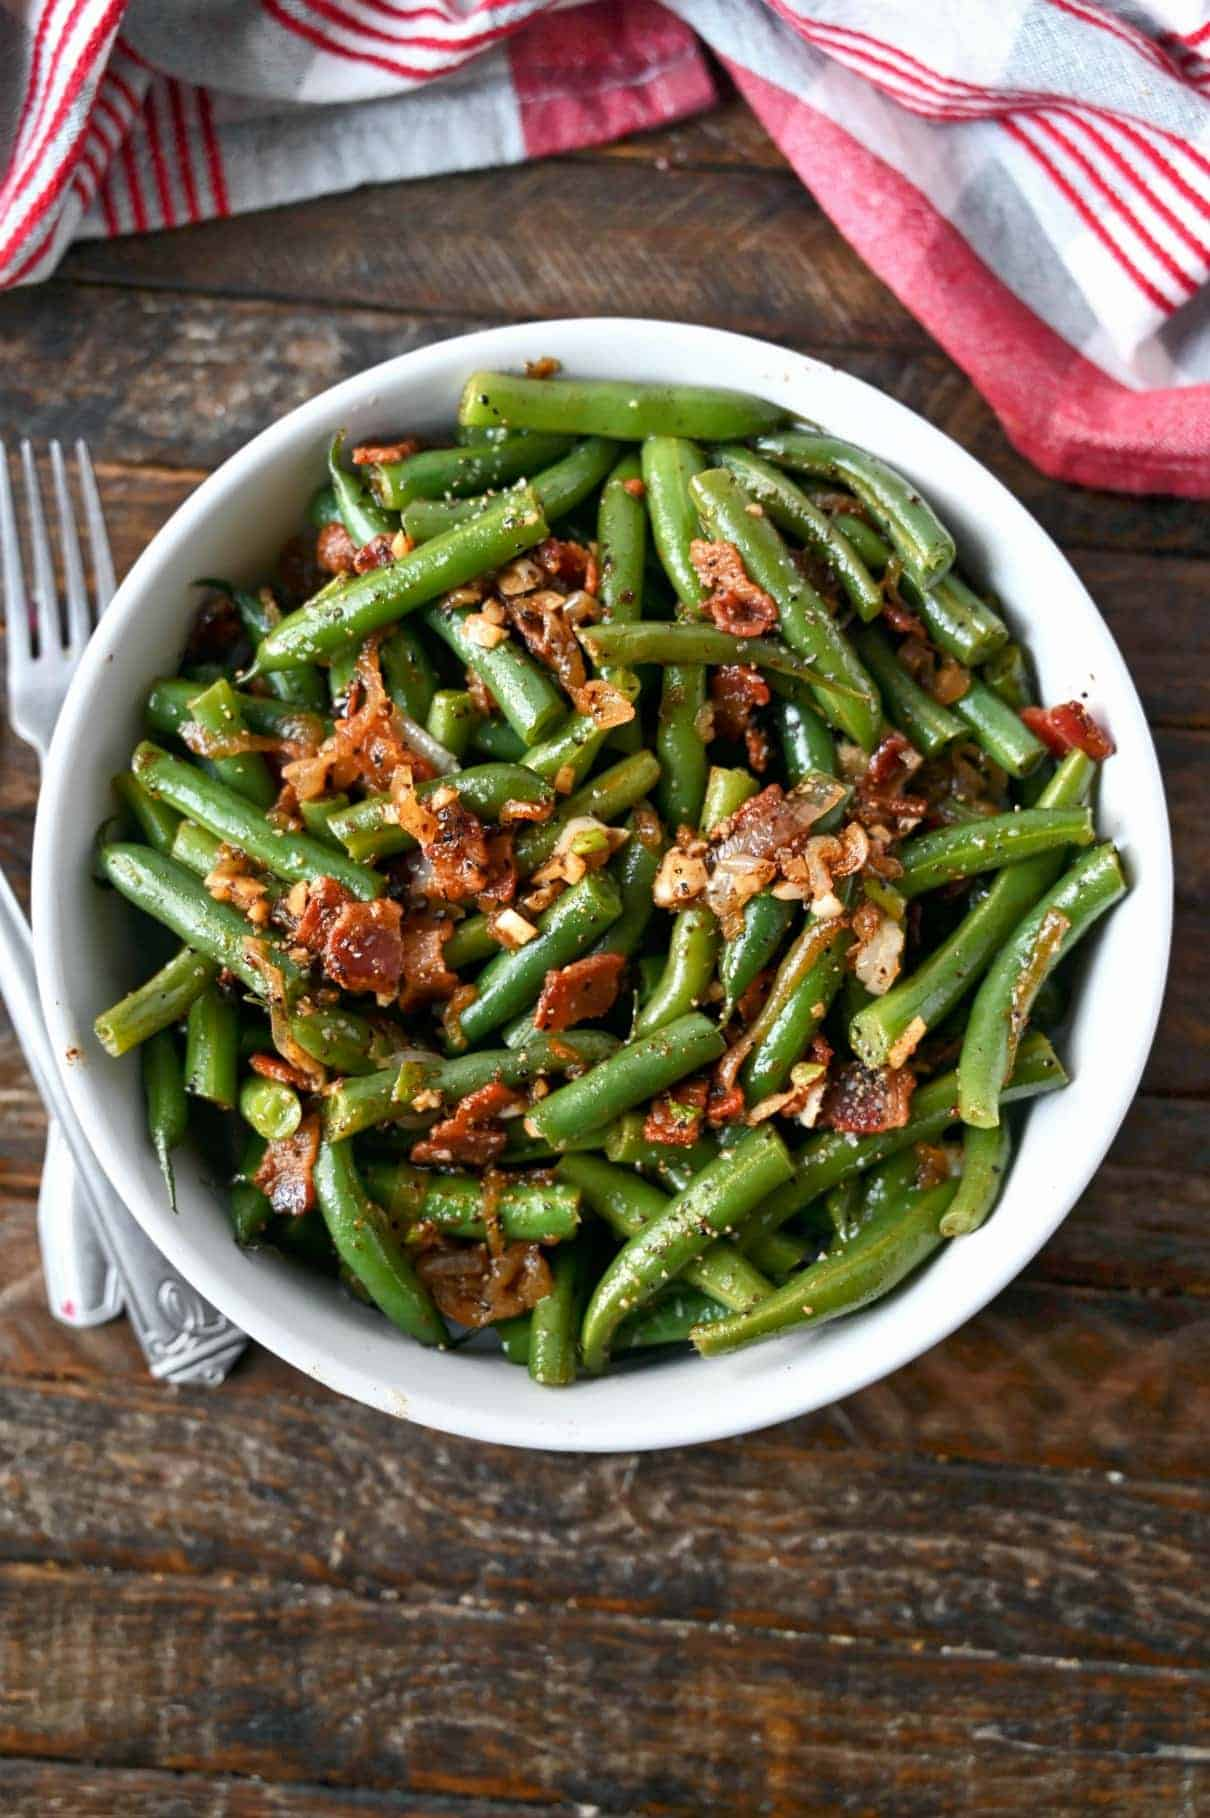 Green beans with bacon and caramelized onion in a white bowl.